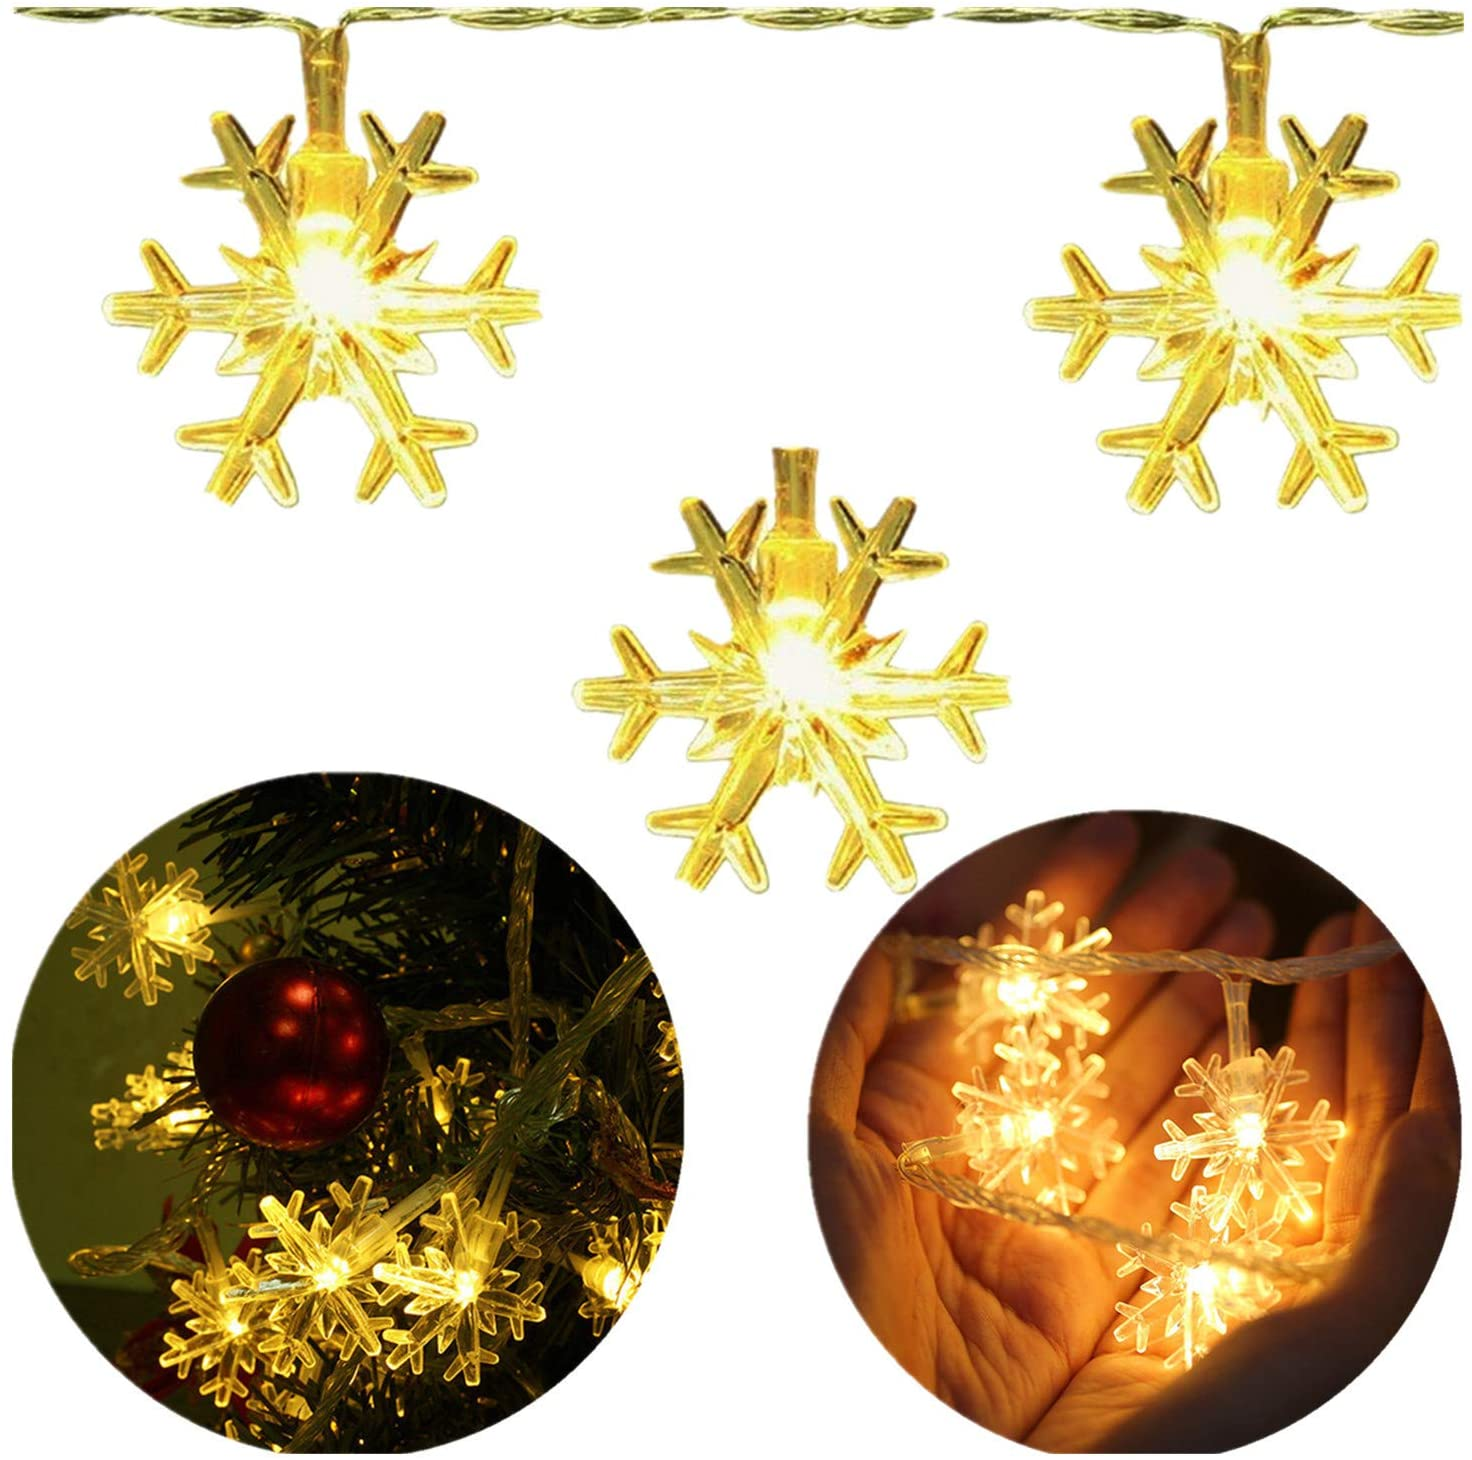 INFILILA Snowflake Led String Lights 33ft/100 LEDs Plug In Indoor & Outdoor Christmas Lights With 8 Changing Model Waterproof Decorative Lights for Bedroom, Patio, Garden, Gate,Yard,Party (Warm White)